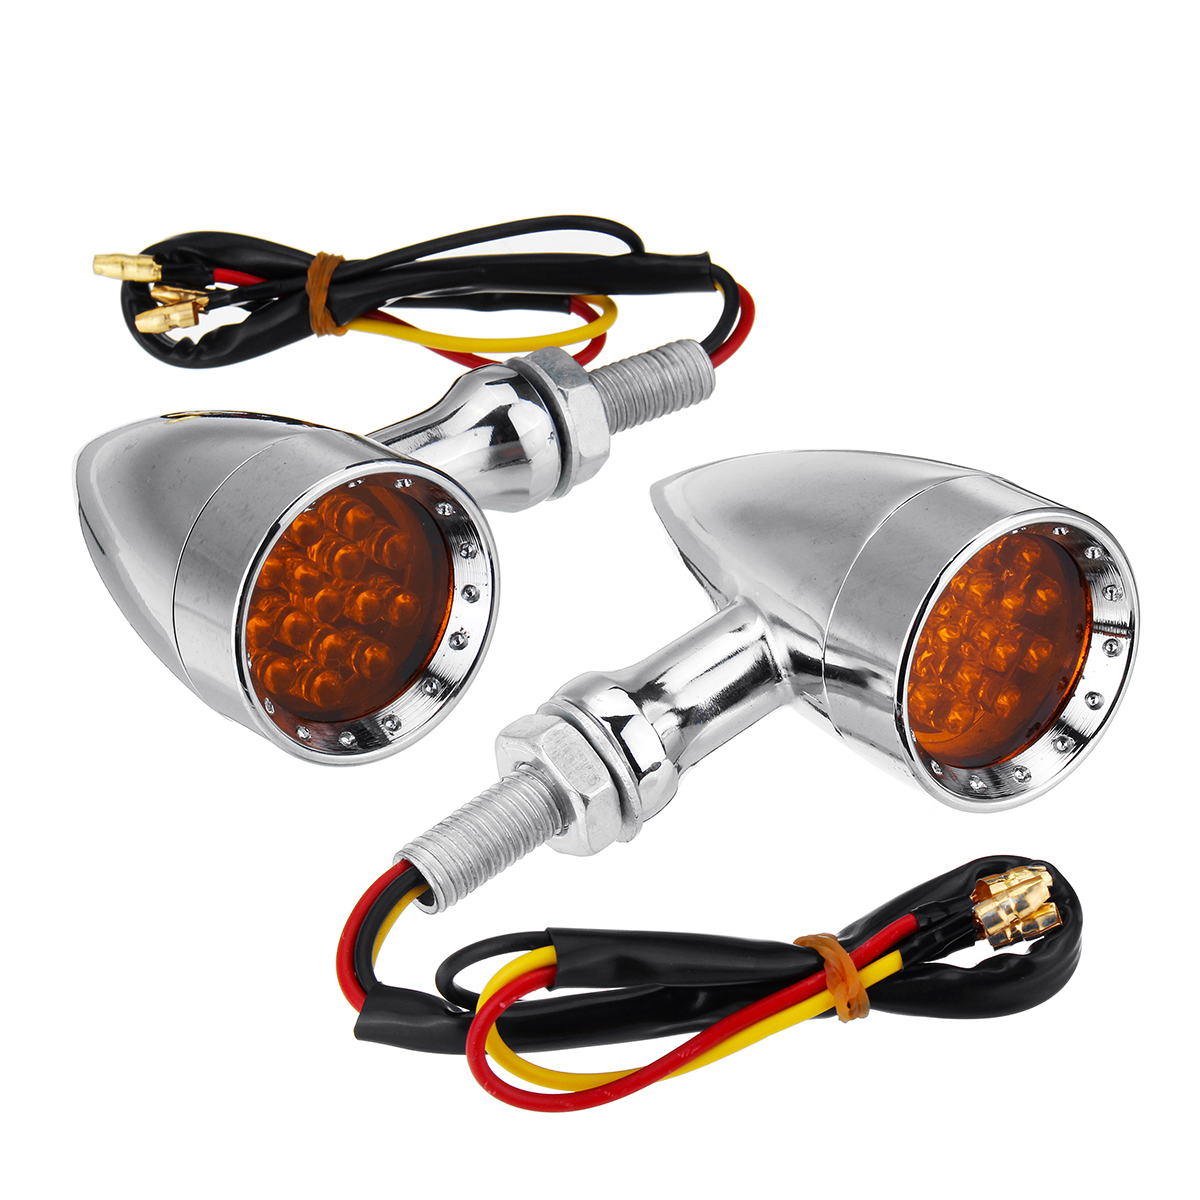 New 12v Universal Motorcycle Bullet Turn Signal Indicator Manual Guide